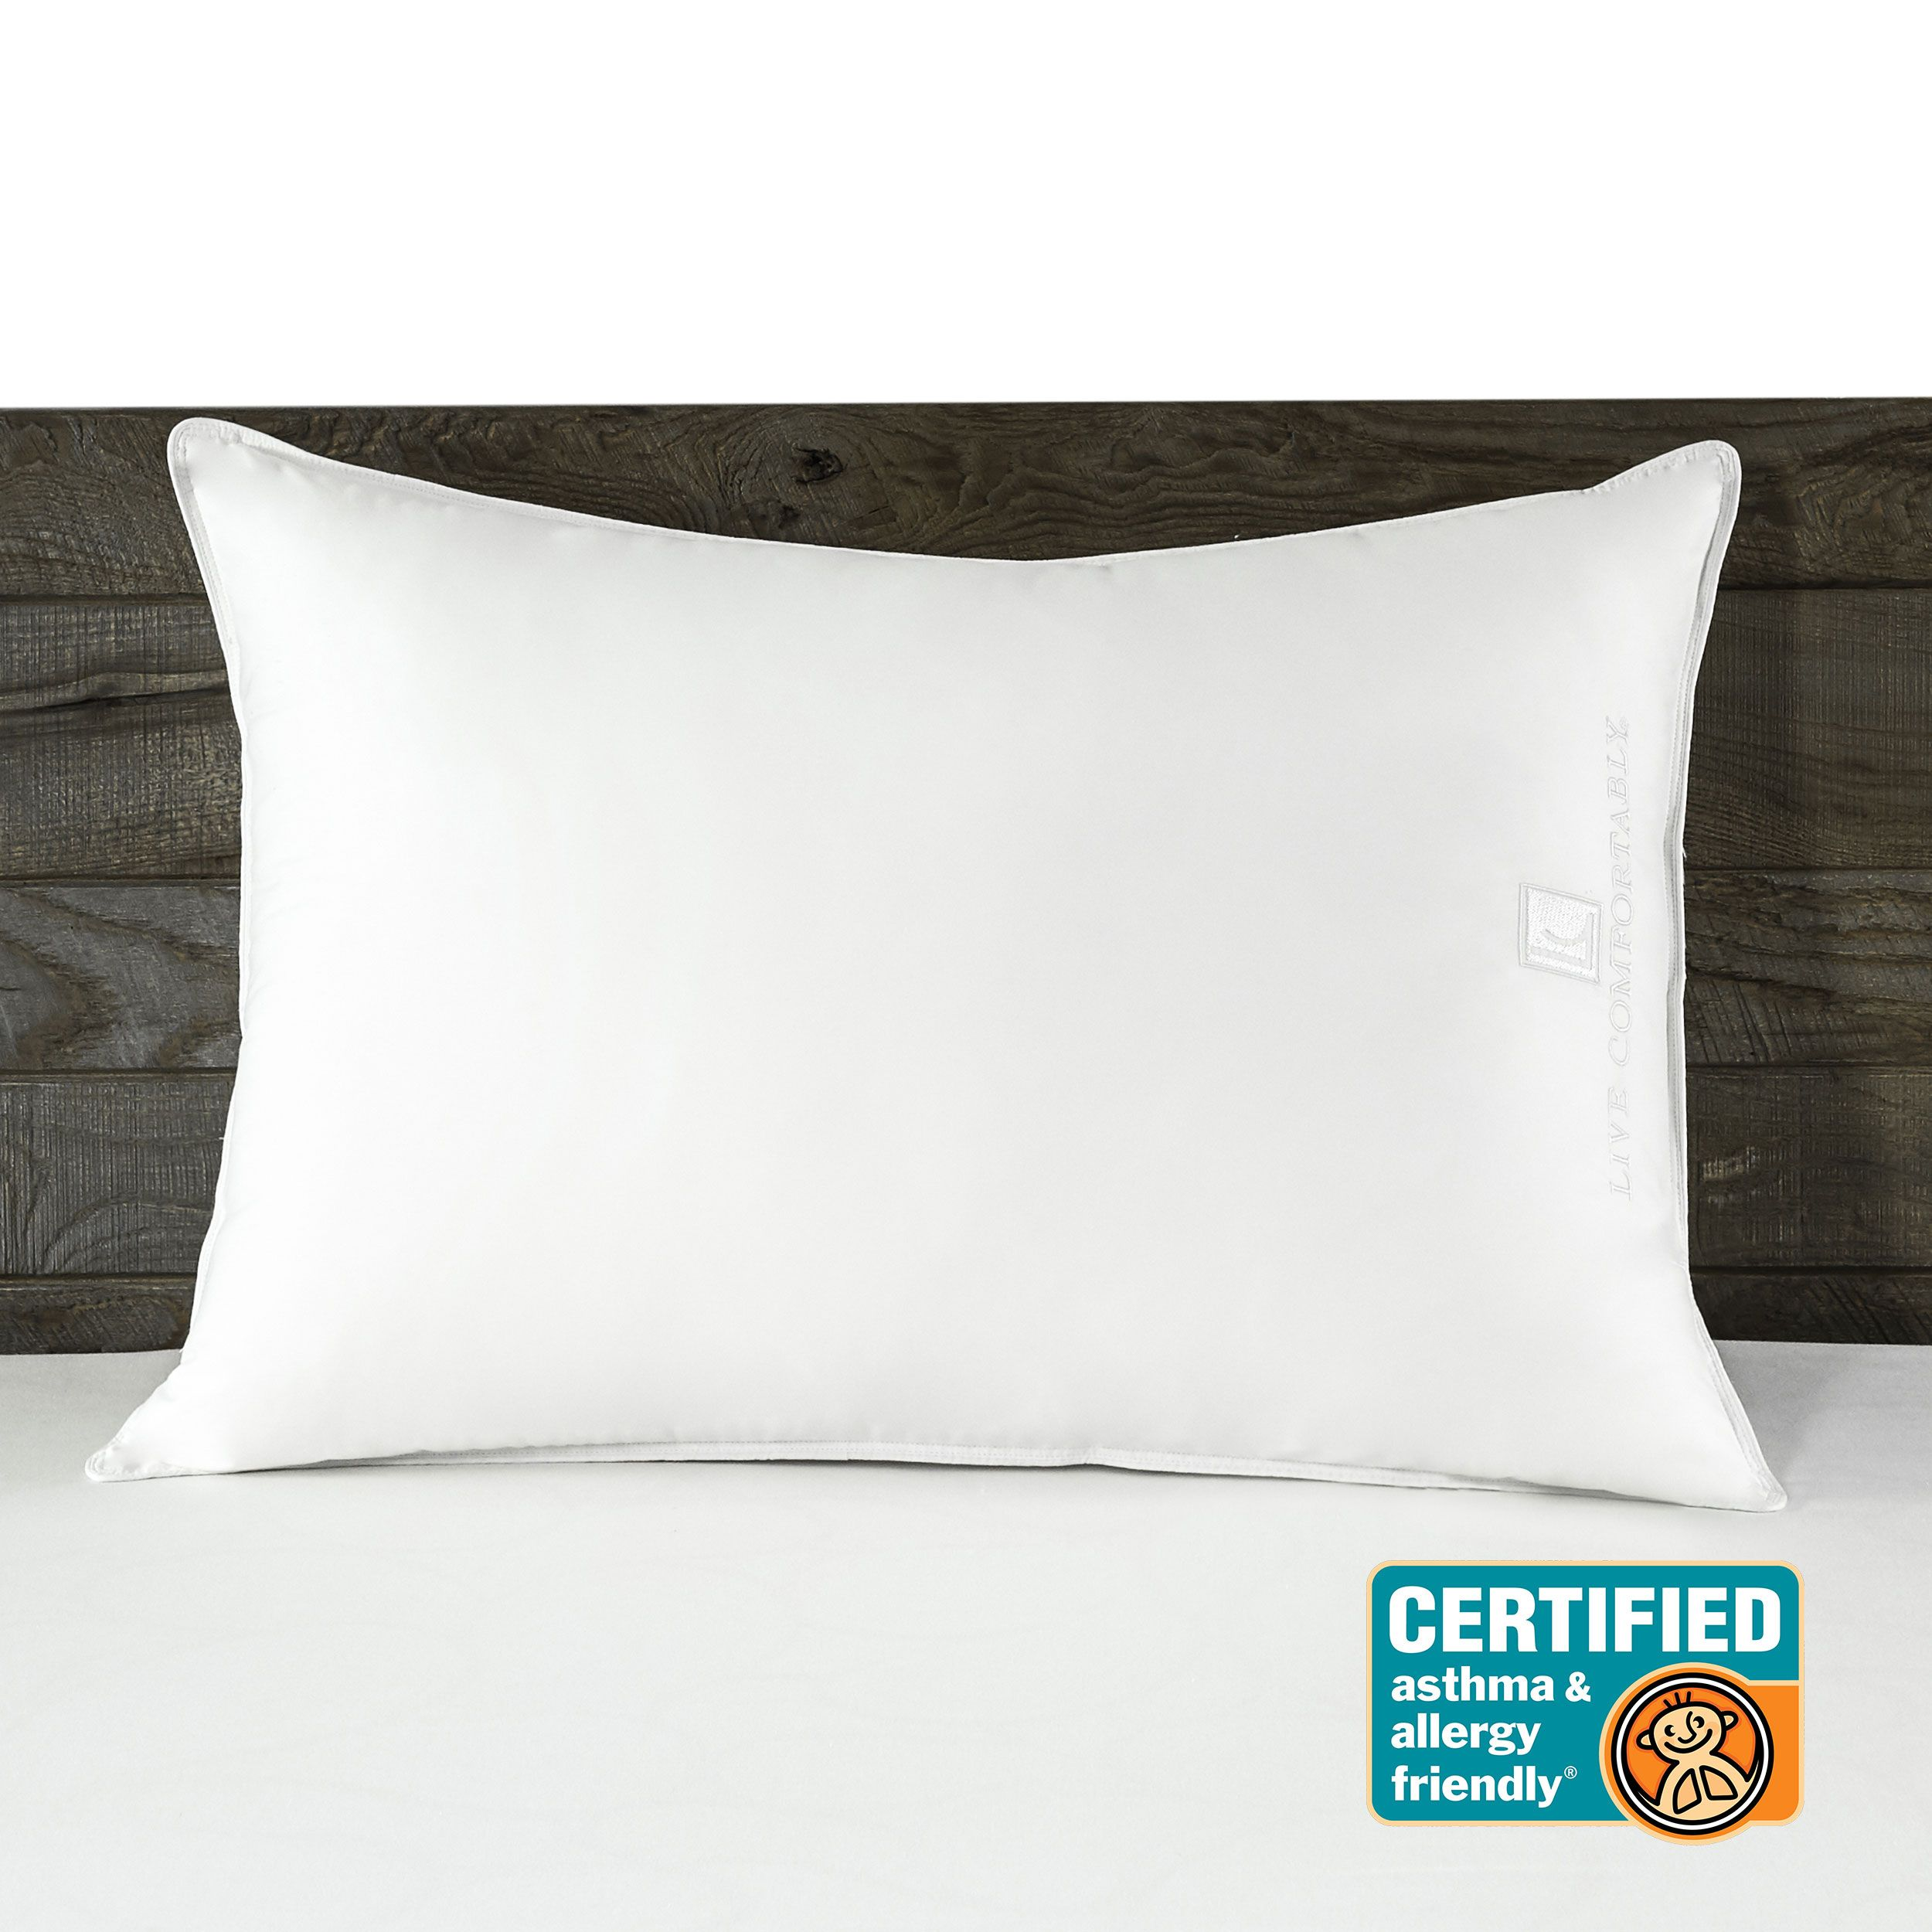 Live Comfortably Certified Asthma Allergy Friendly Down Alternative Pillow Pillows Allergy Asthma Live Comfortably